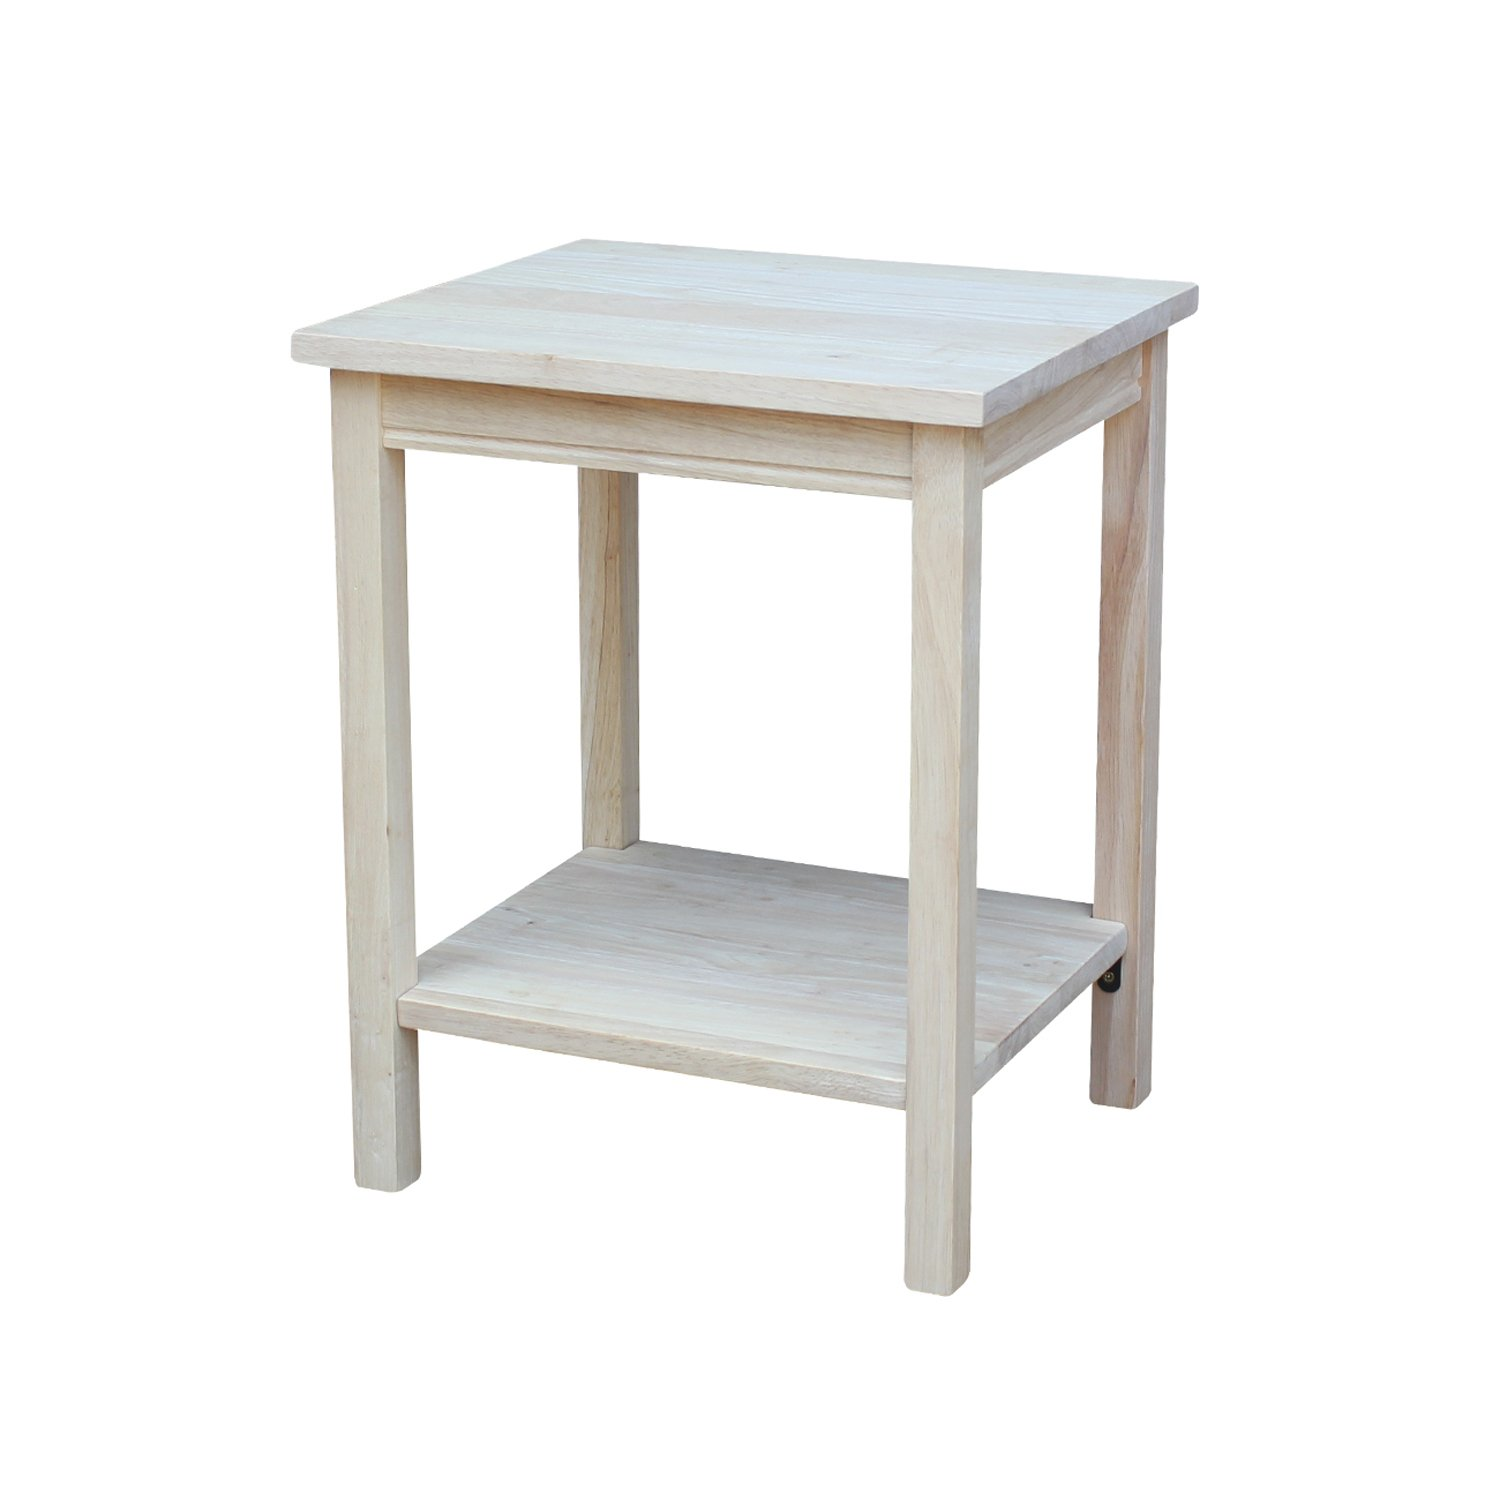 international concepts accent table unfinished grey wood kitchen dining winchester furniture nursery nightstand style patio and chairs with umbrella pottery barn night tables